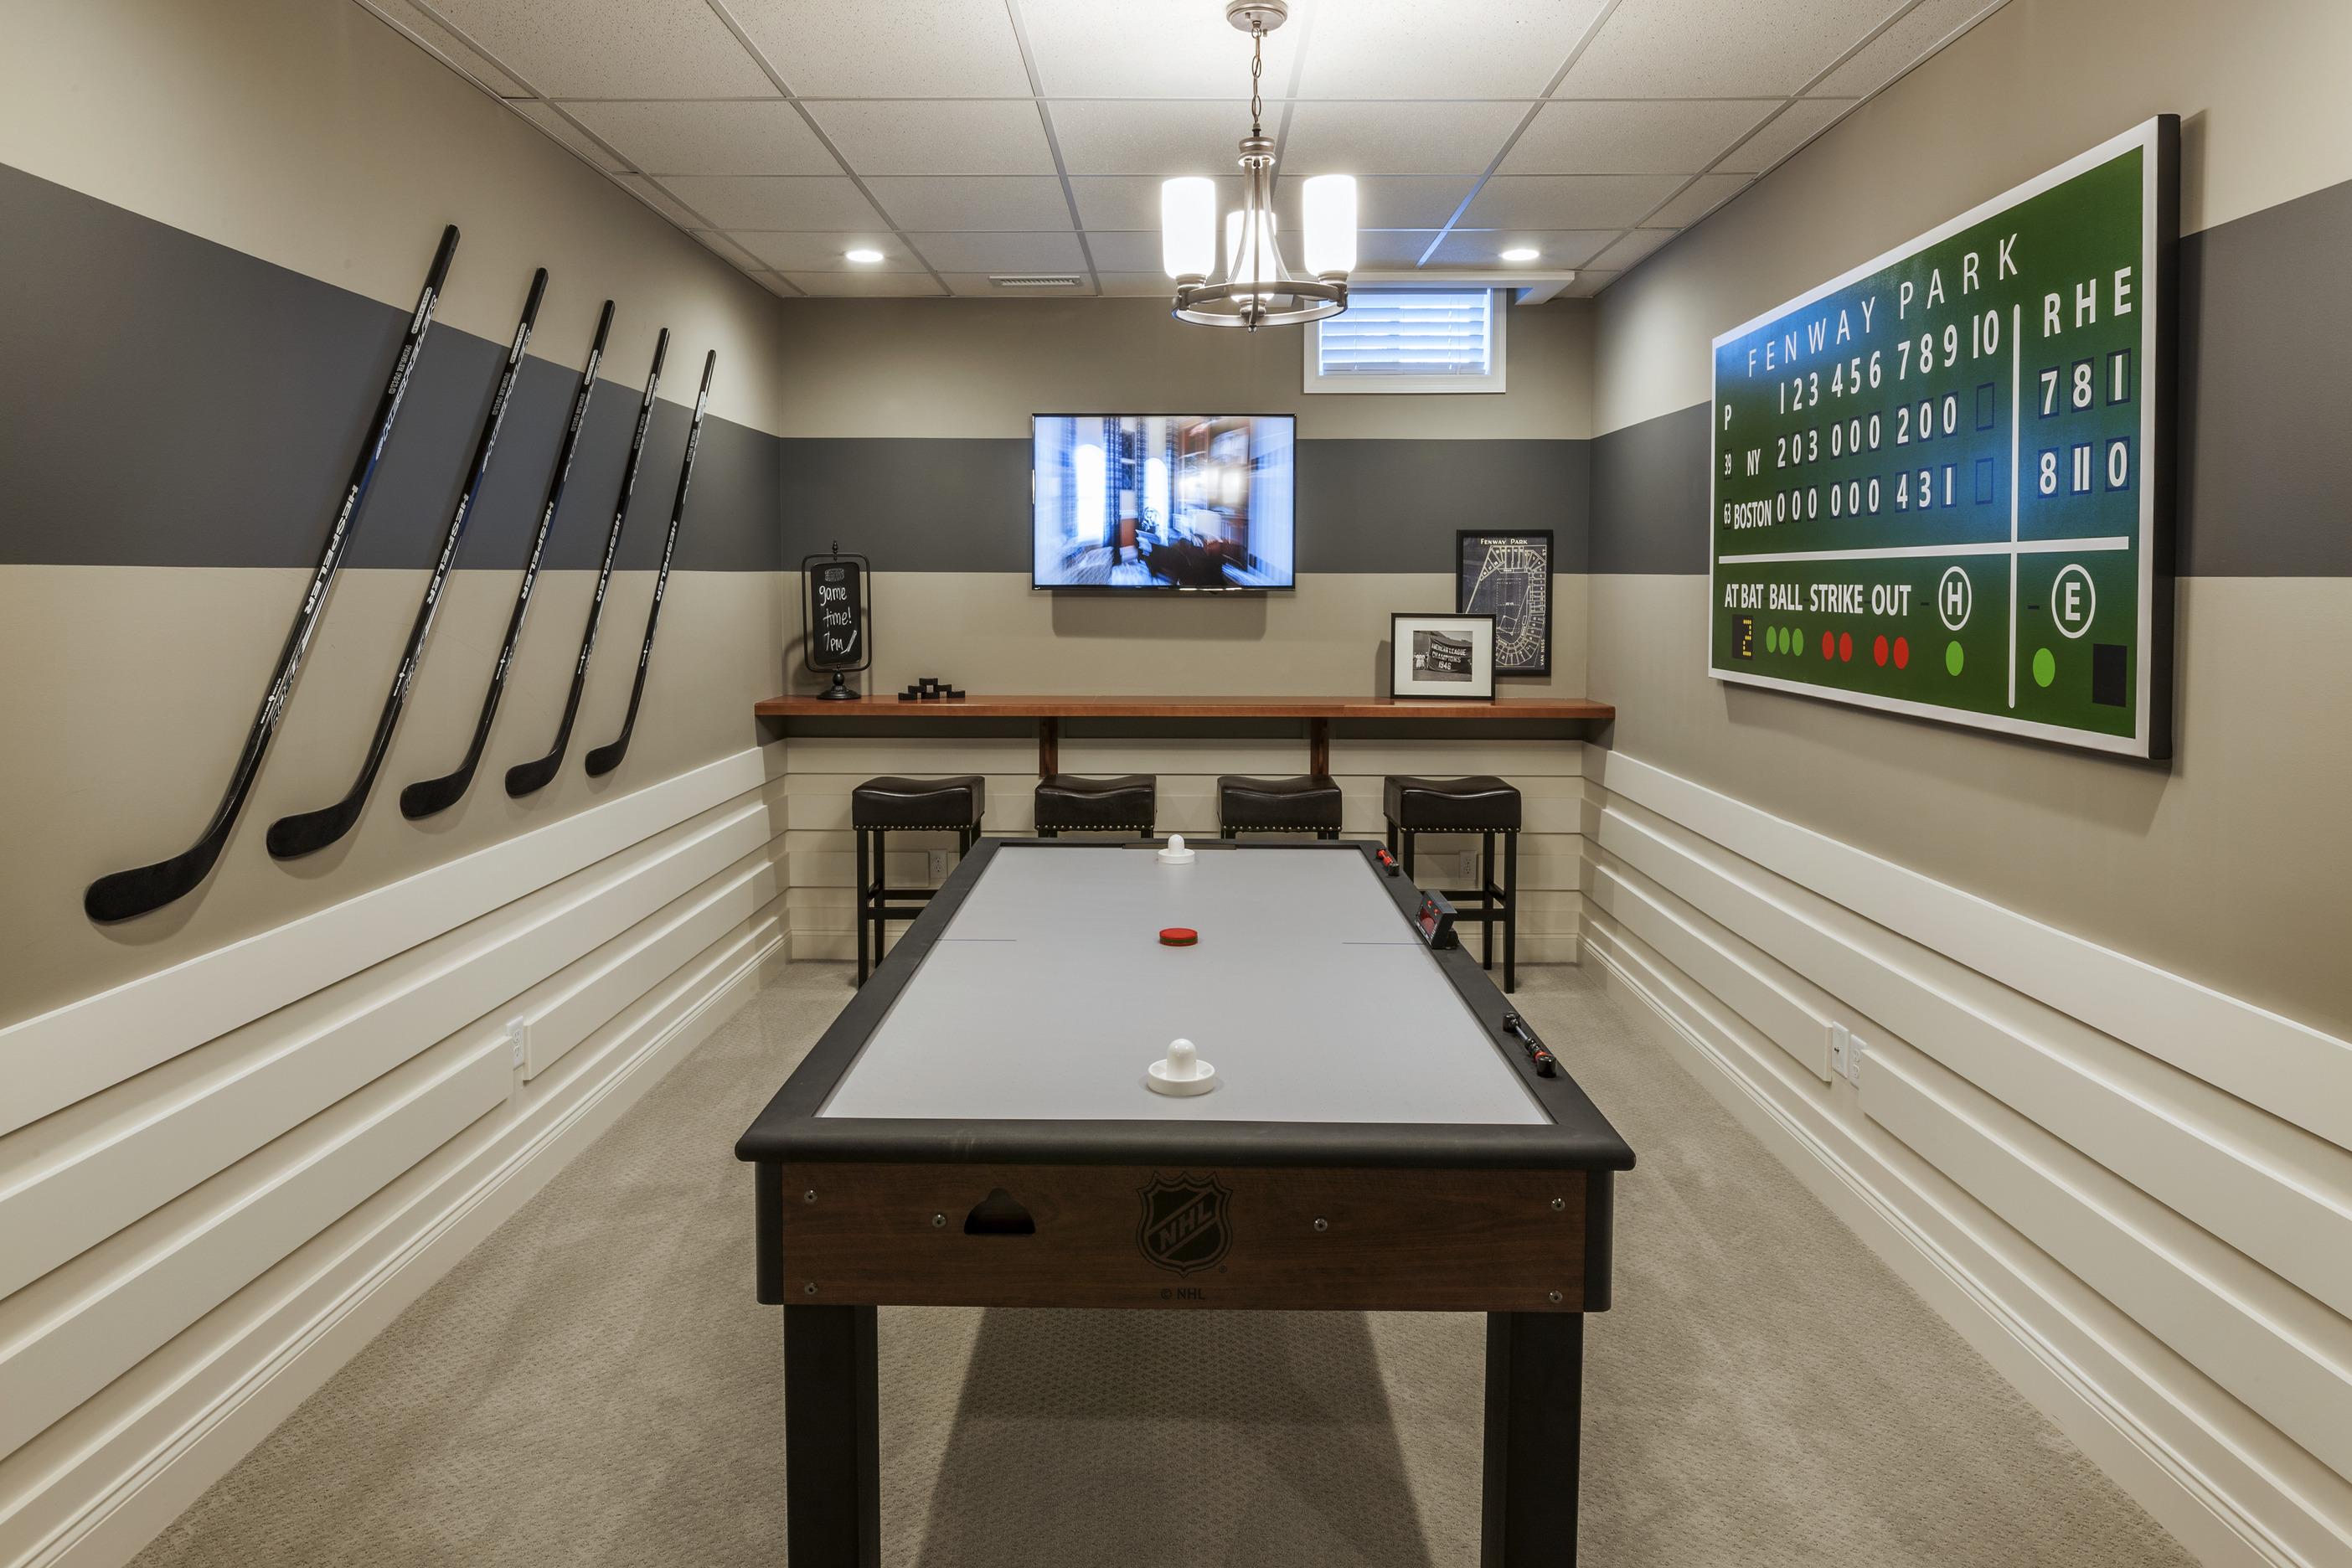 Game room with a pool table and a TV.